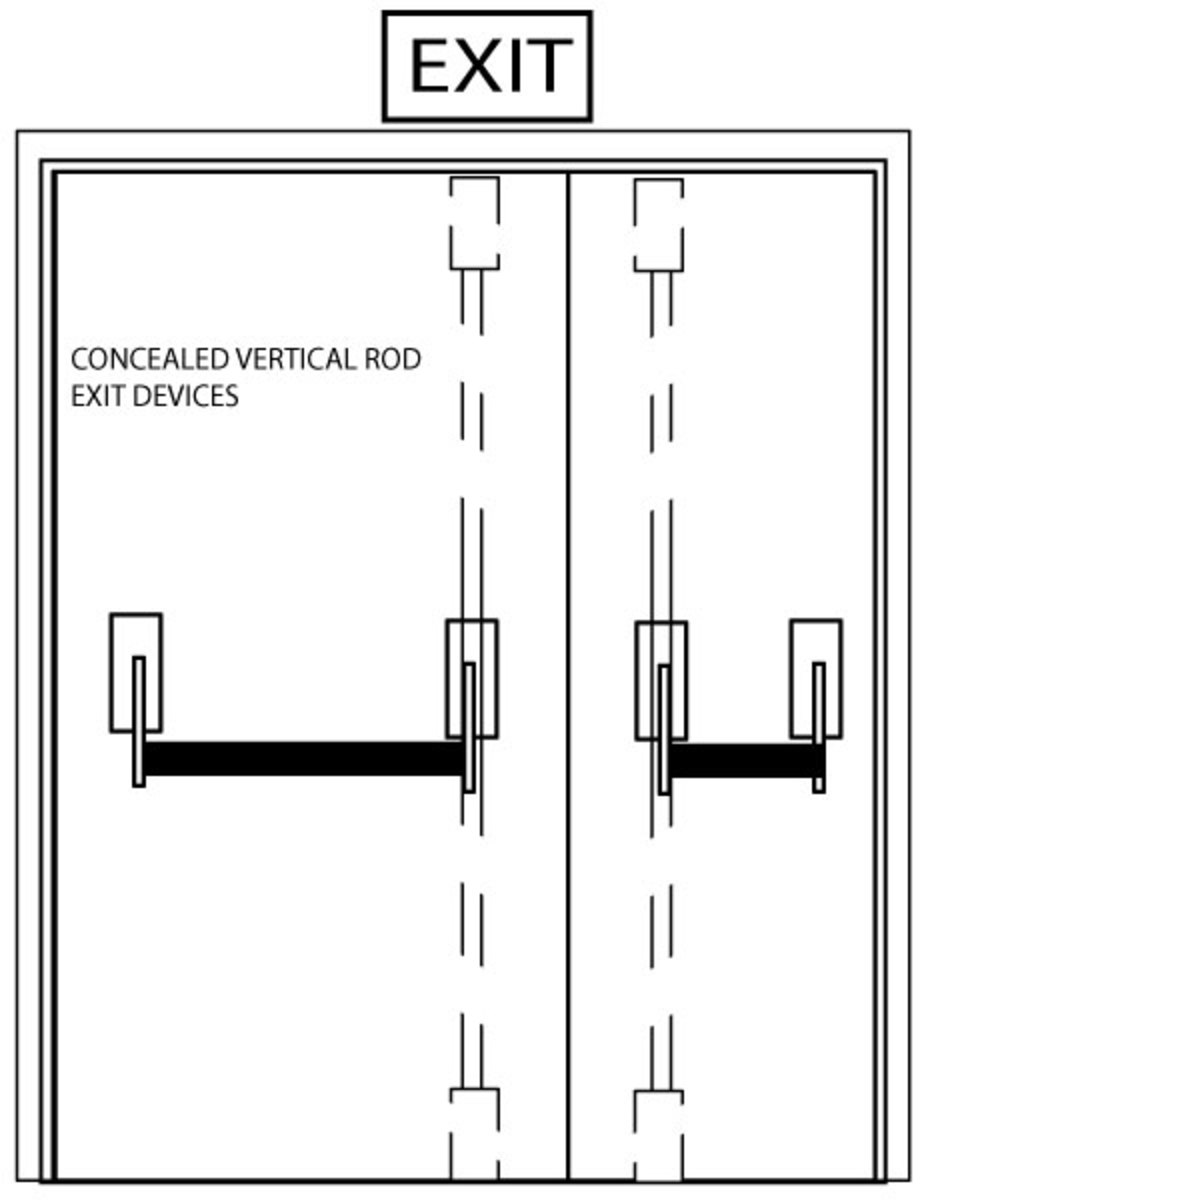 Fig. 2 - Concealed Vertical Rod (CVR) Crossbar Exit Devices on Uneven Pair of Doors